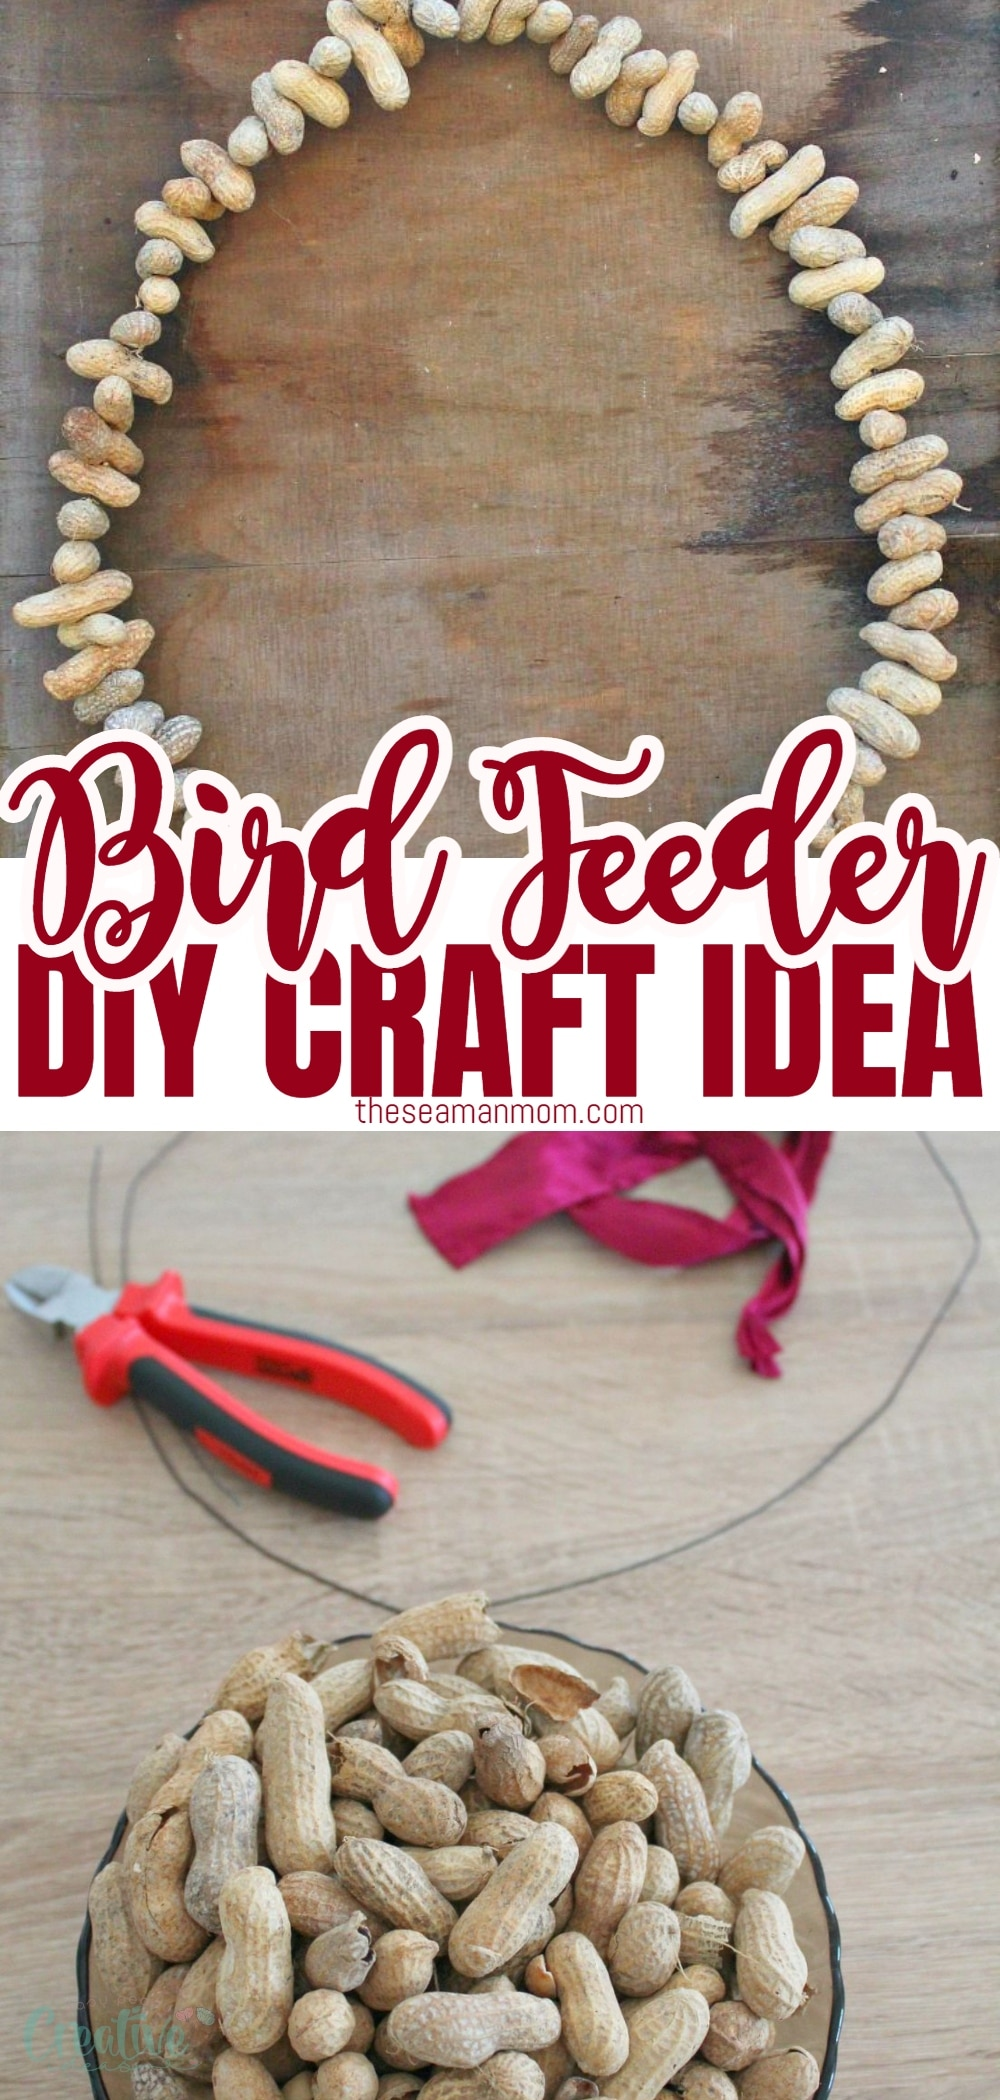 Make this fun and easy peanut bird feeder to keep birds happy and healthy in cold fall and winter days! A 10 minutes project that makes a great gift too! via @petroneagu